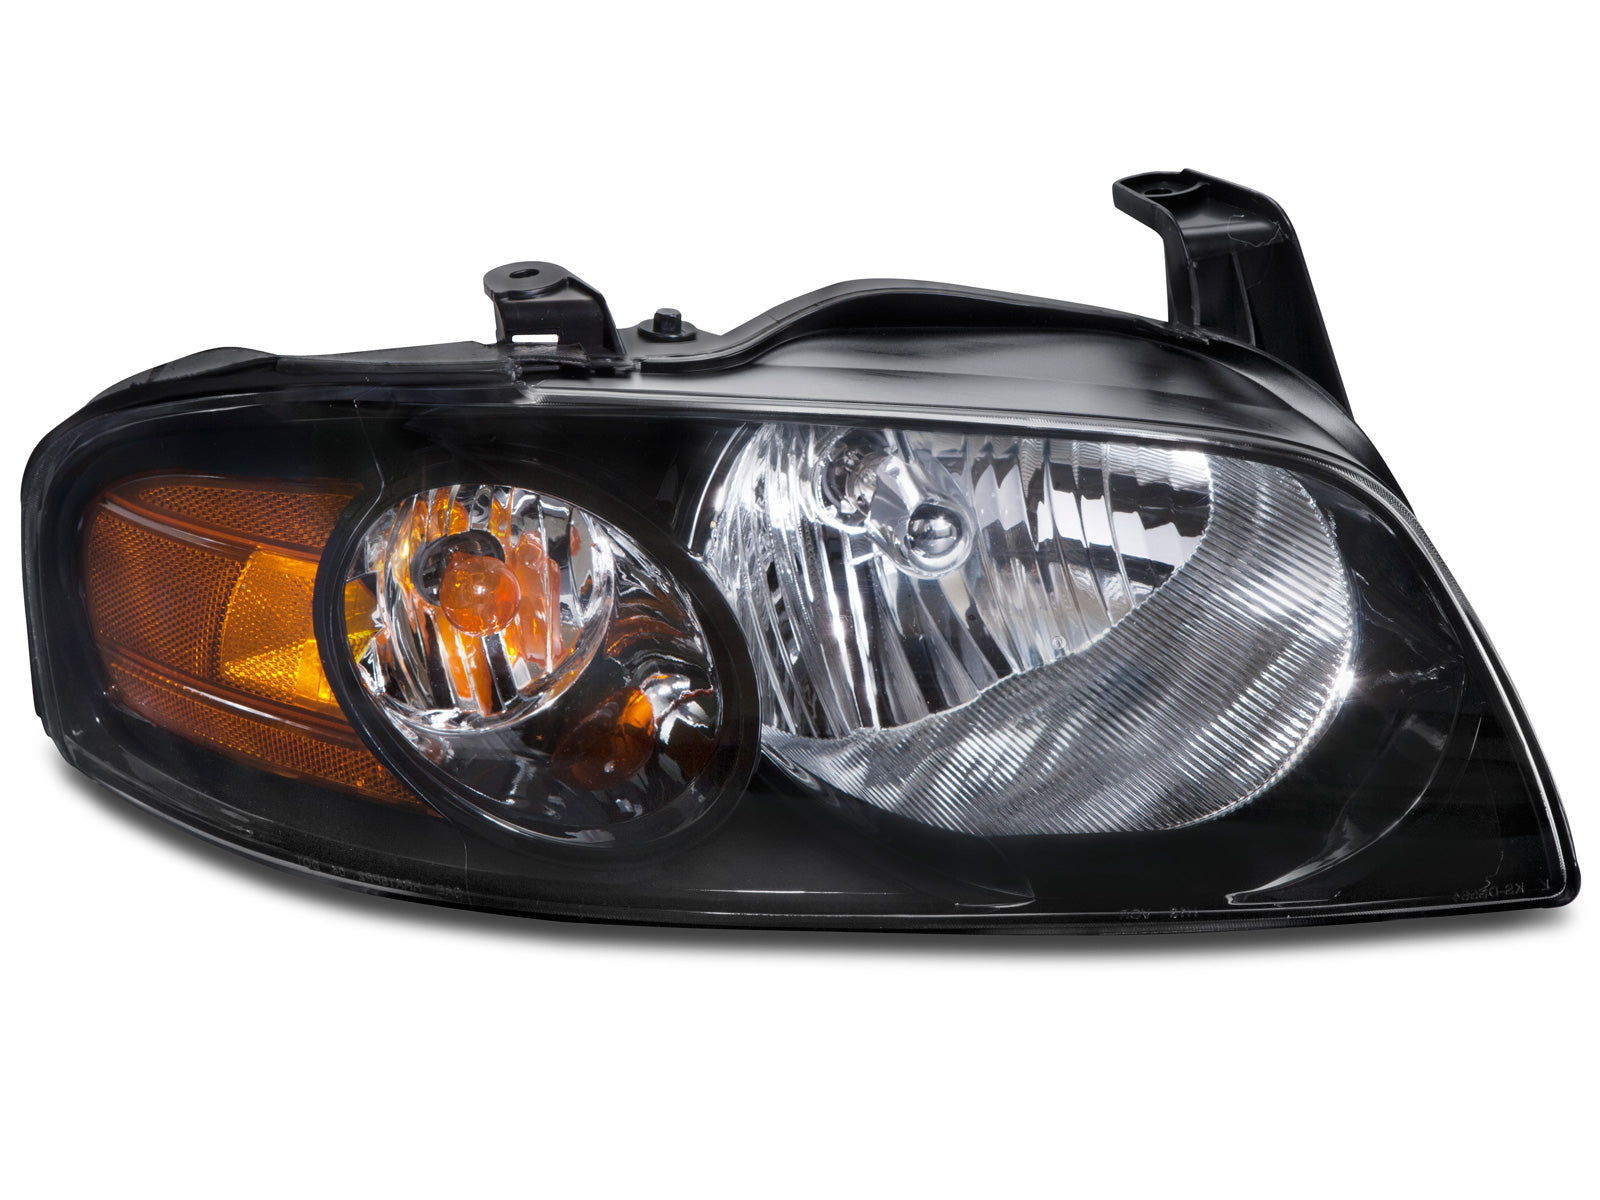 Headlight Halogen Type Right Passenger Side Assembly Fits 2004-2006 Nissan Sentra Se-R Spec-V